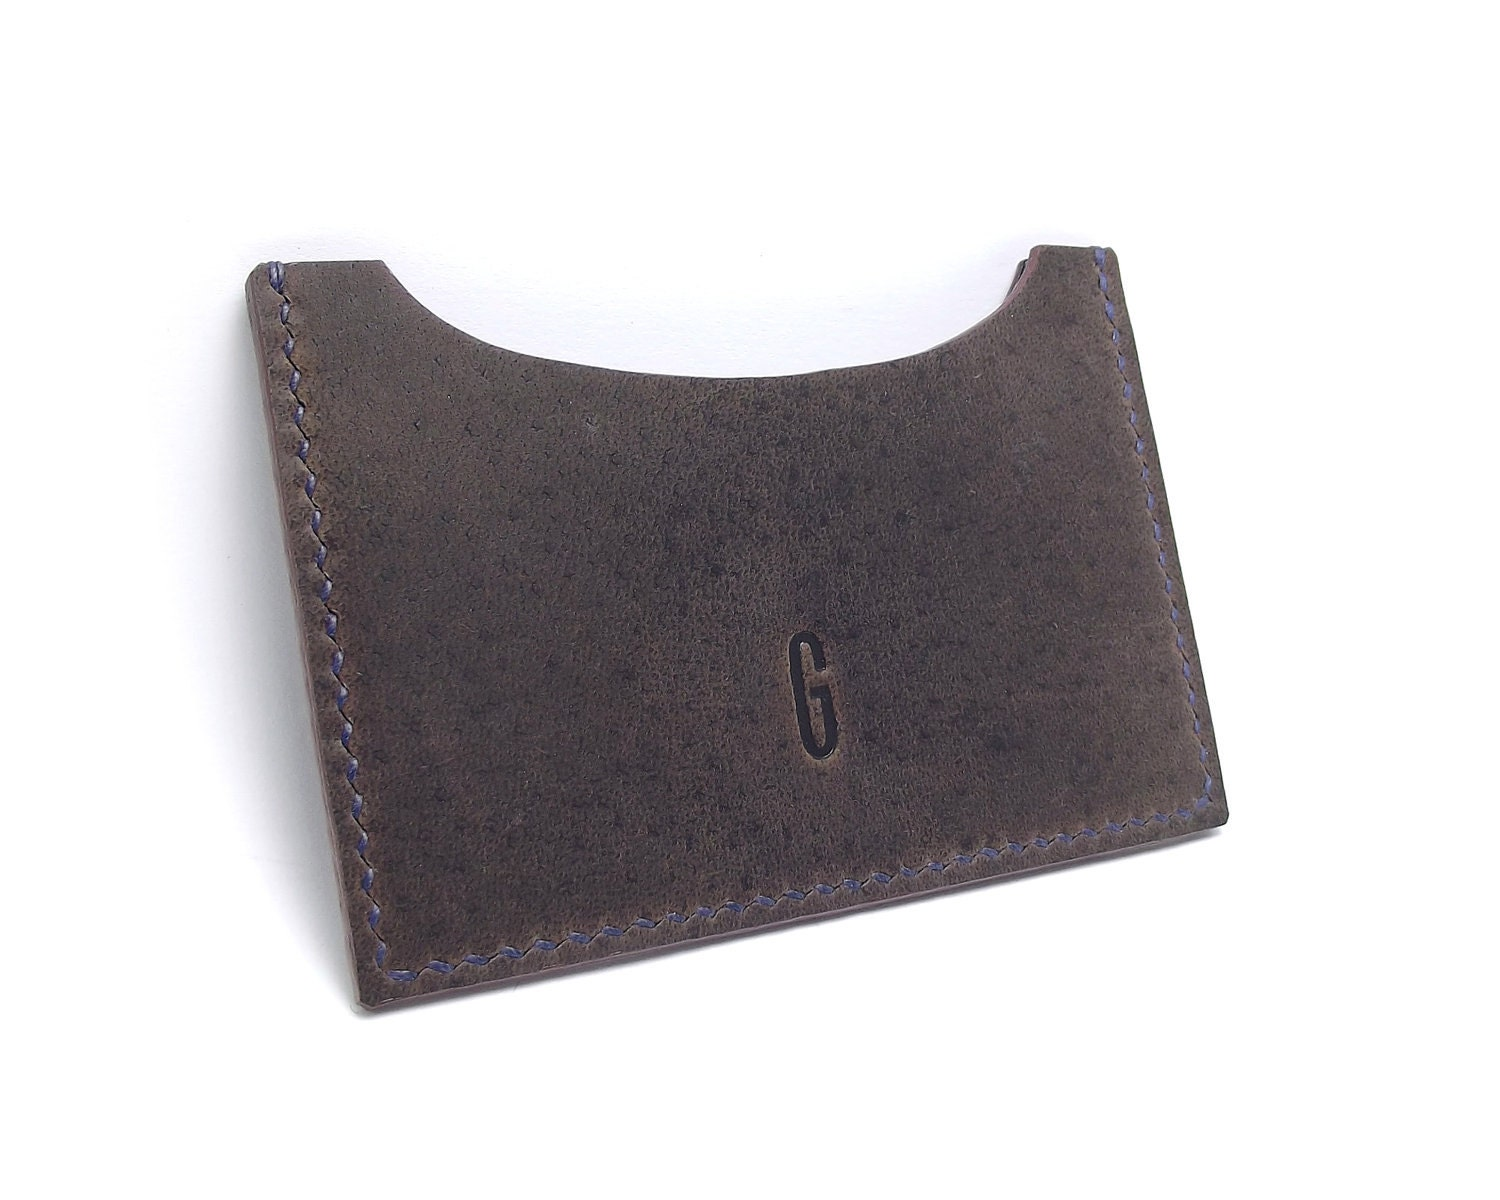 Monogrammed dark leather card holder business card case for Monogrammed leather business card holder